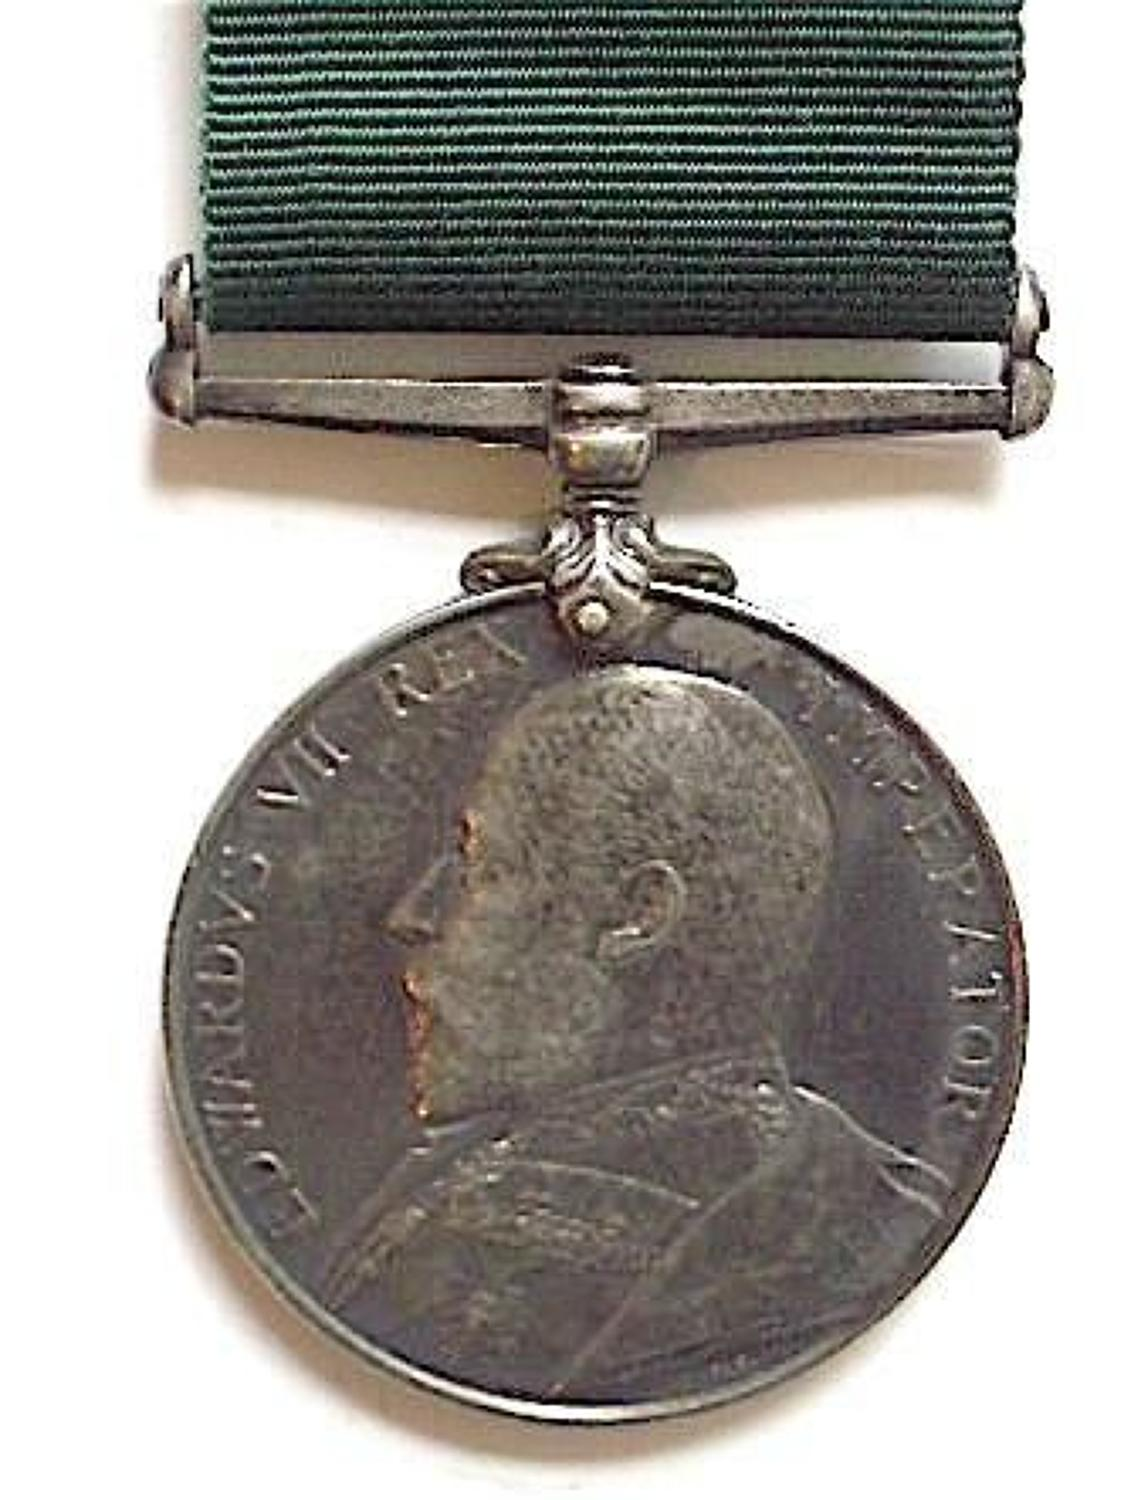 Edwardian 5th VB Highland Light Infantry Volunteer Long Service Medal.